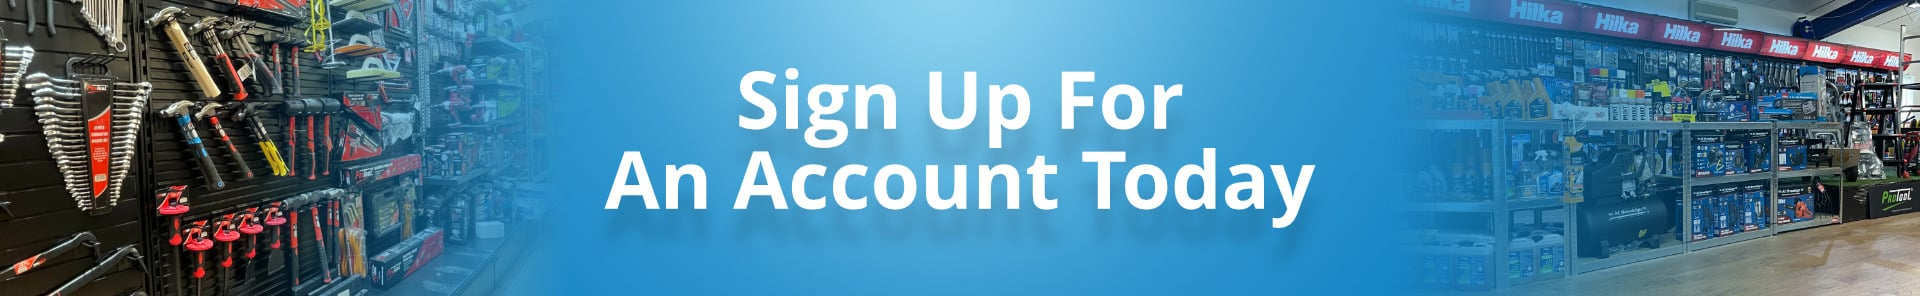 Wide Banner - Sign Up